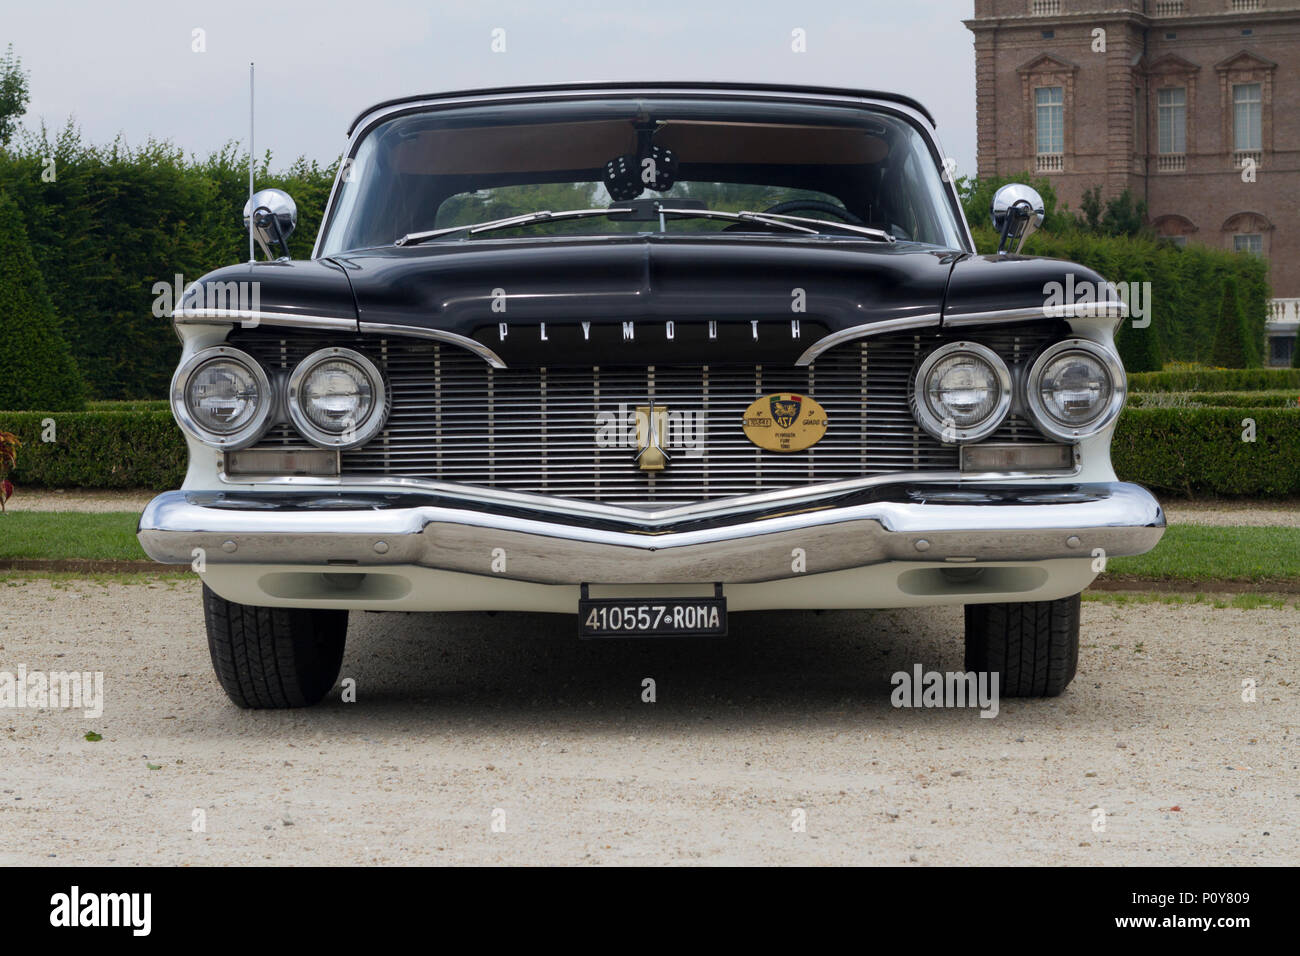 Plymouth Fury Stock Photos Images Alamy 1960 Convertible A In The Gardens Of